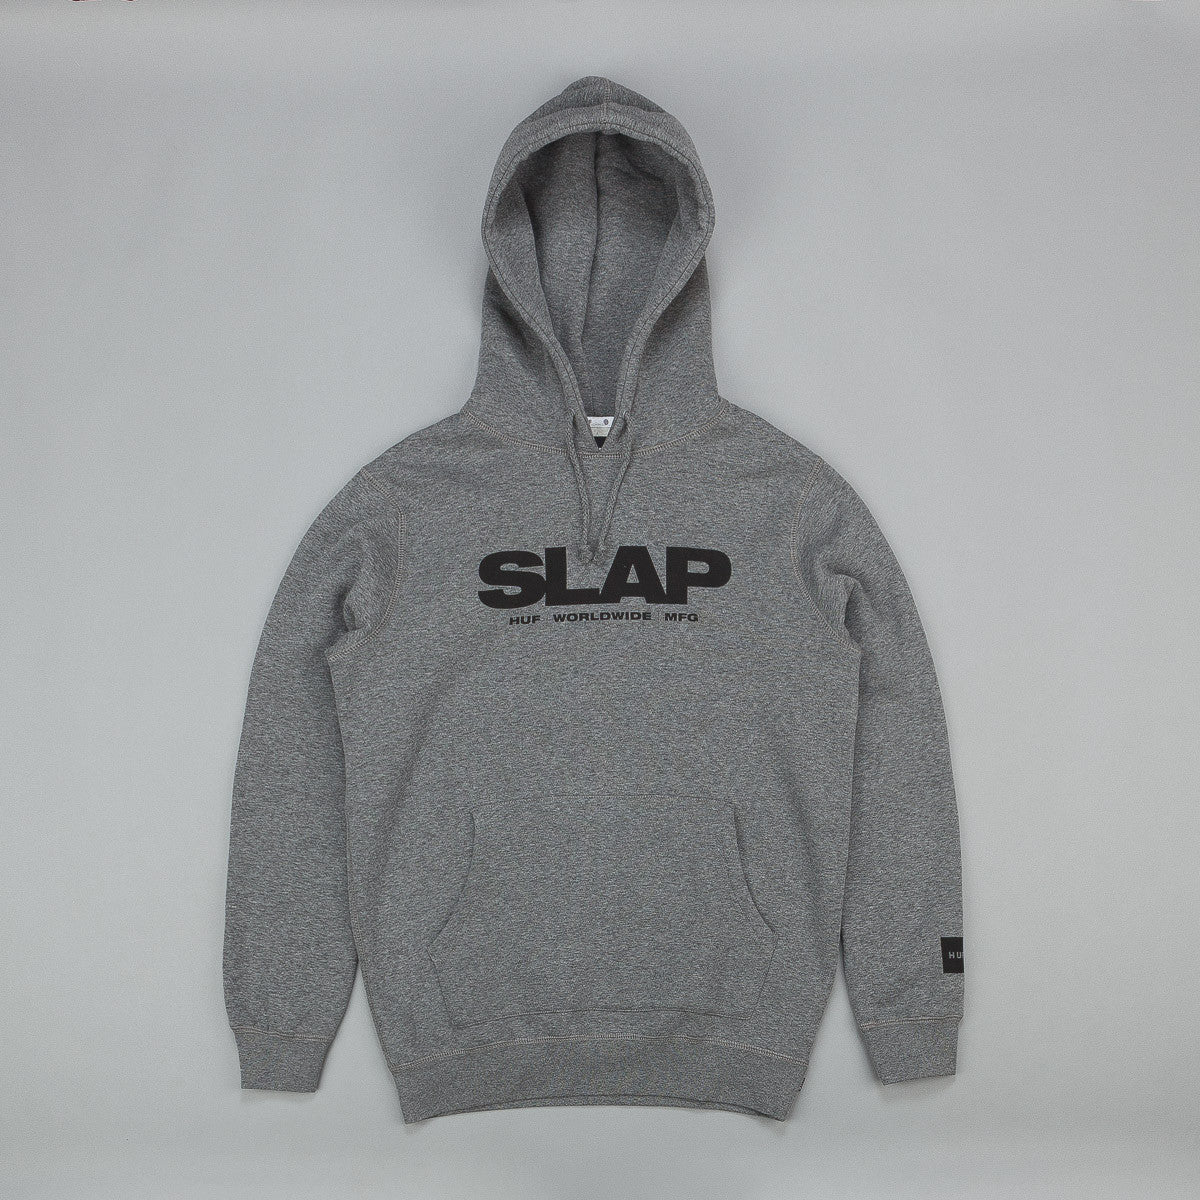 Huf X Slap Hooded Sweatshirt